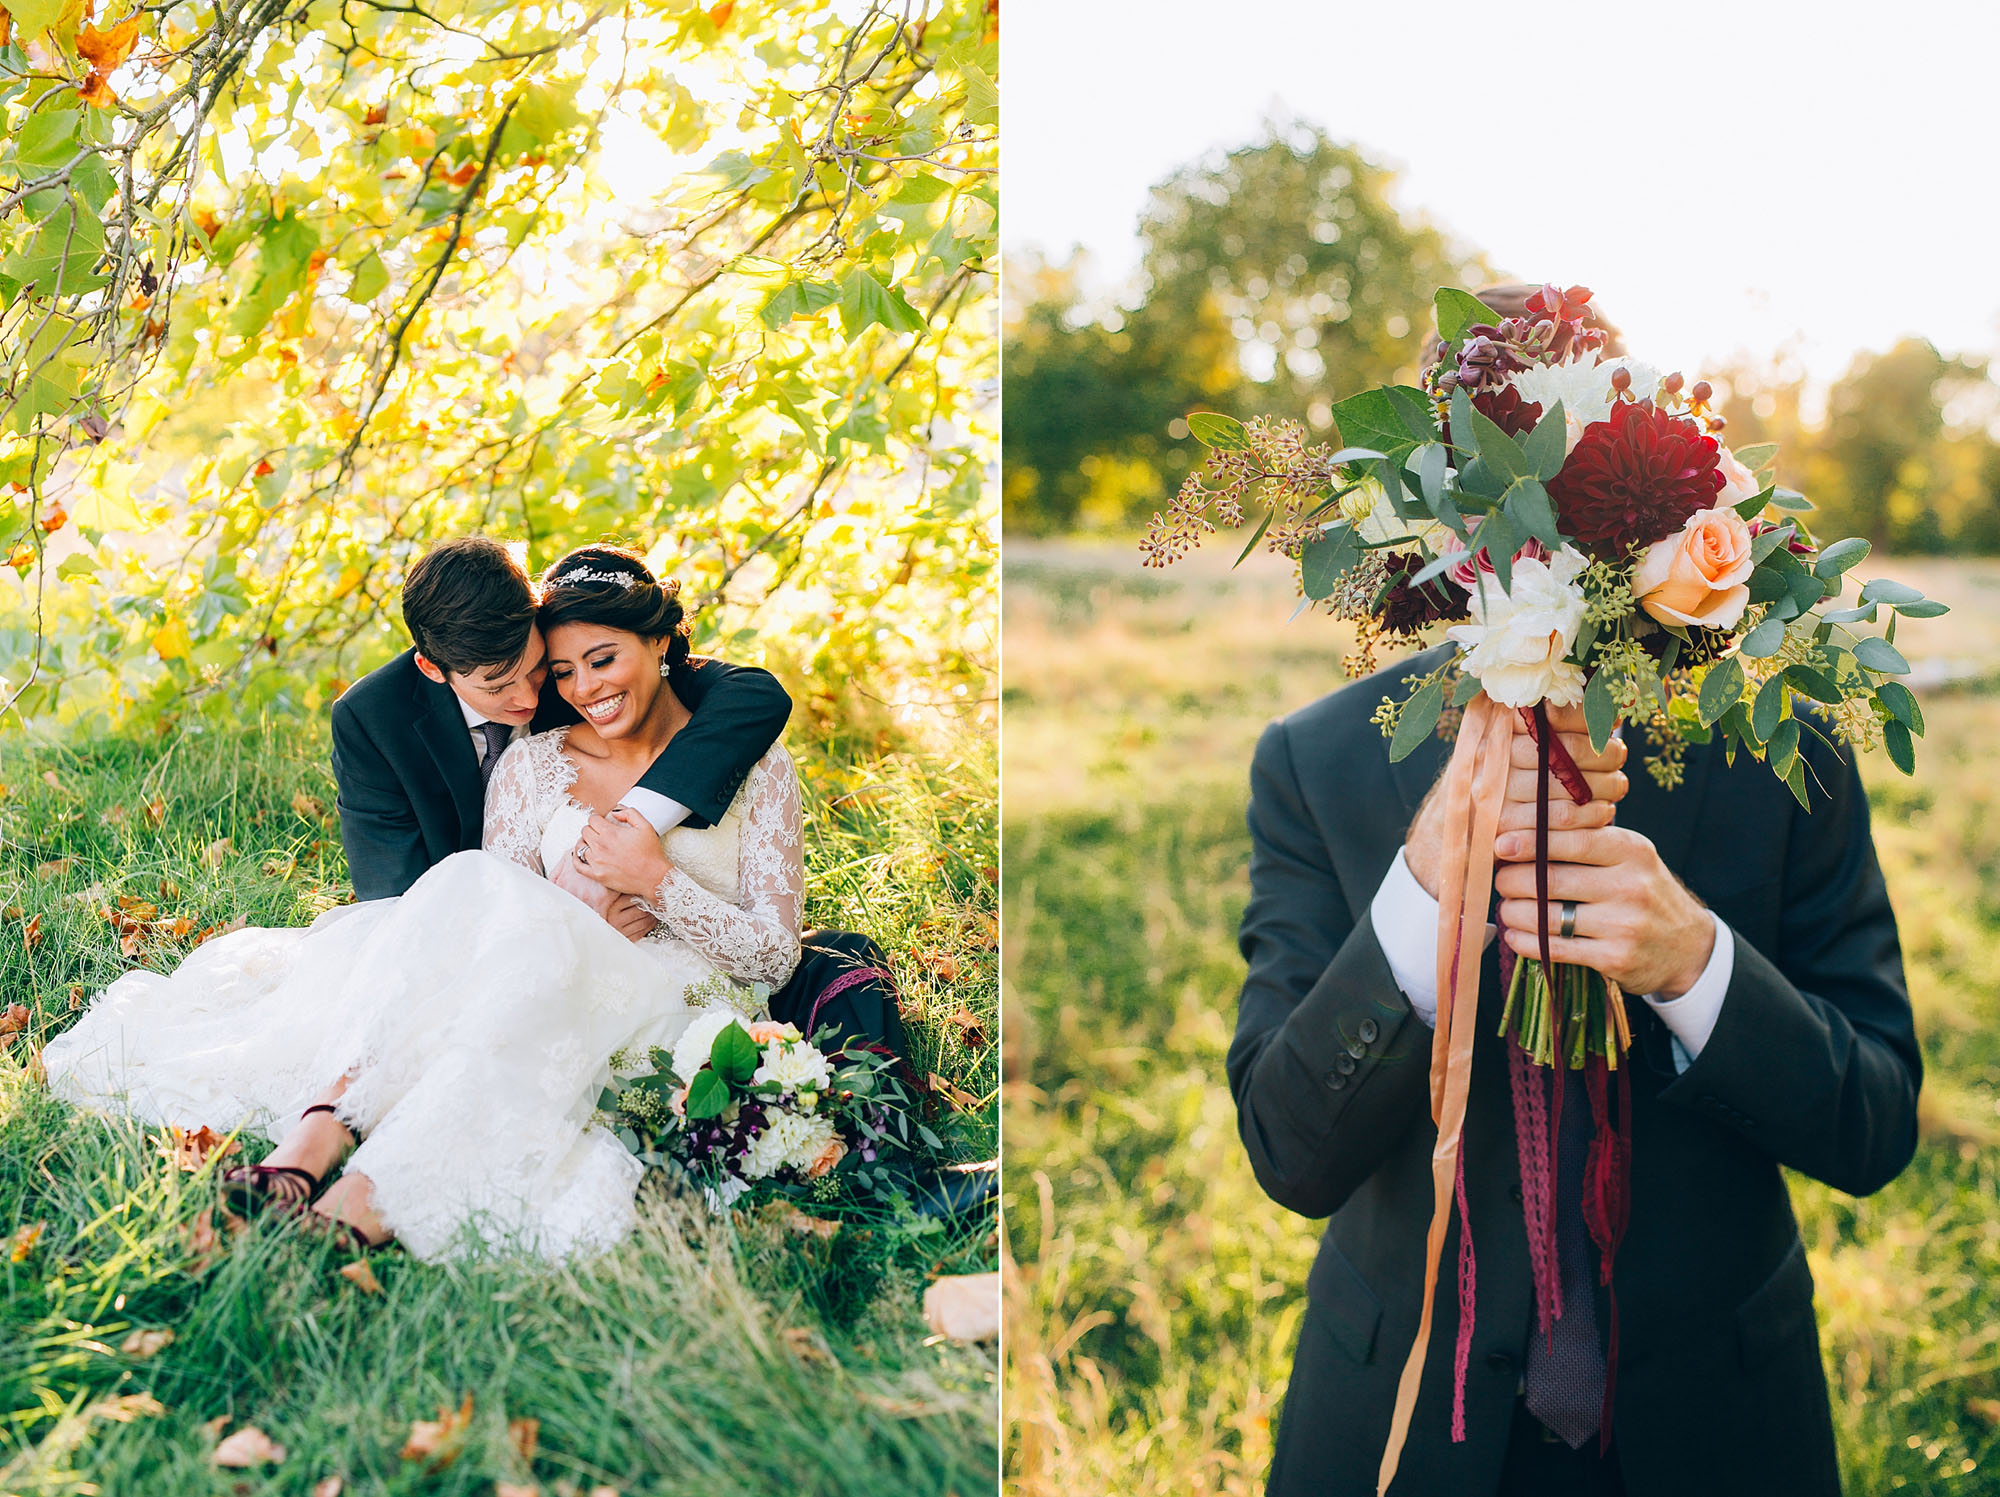 ashley vos photography seattle area wedding photographer_0812.jpg